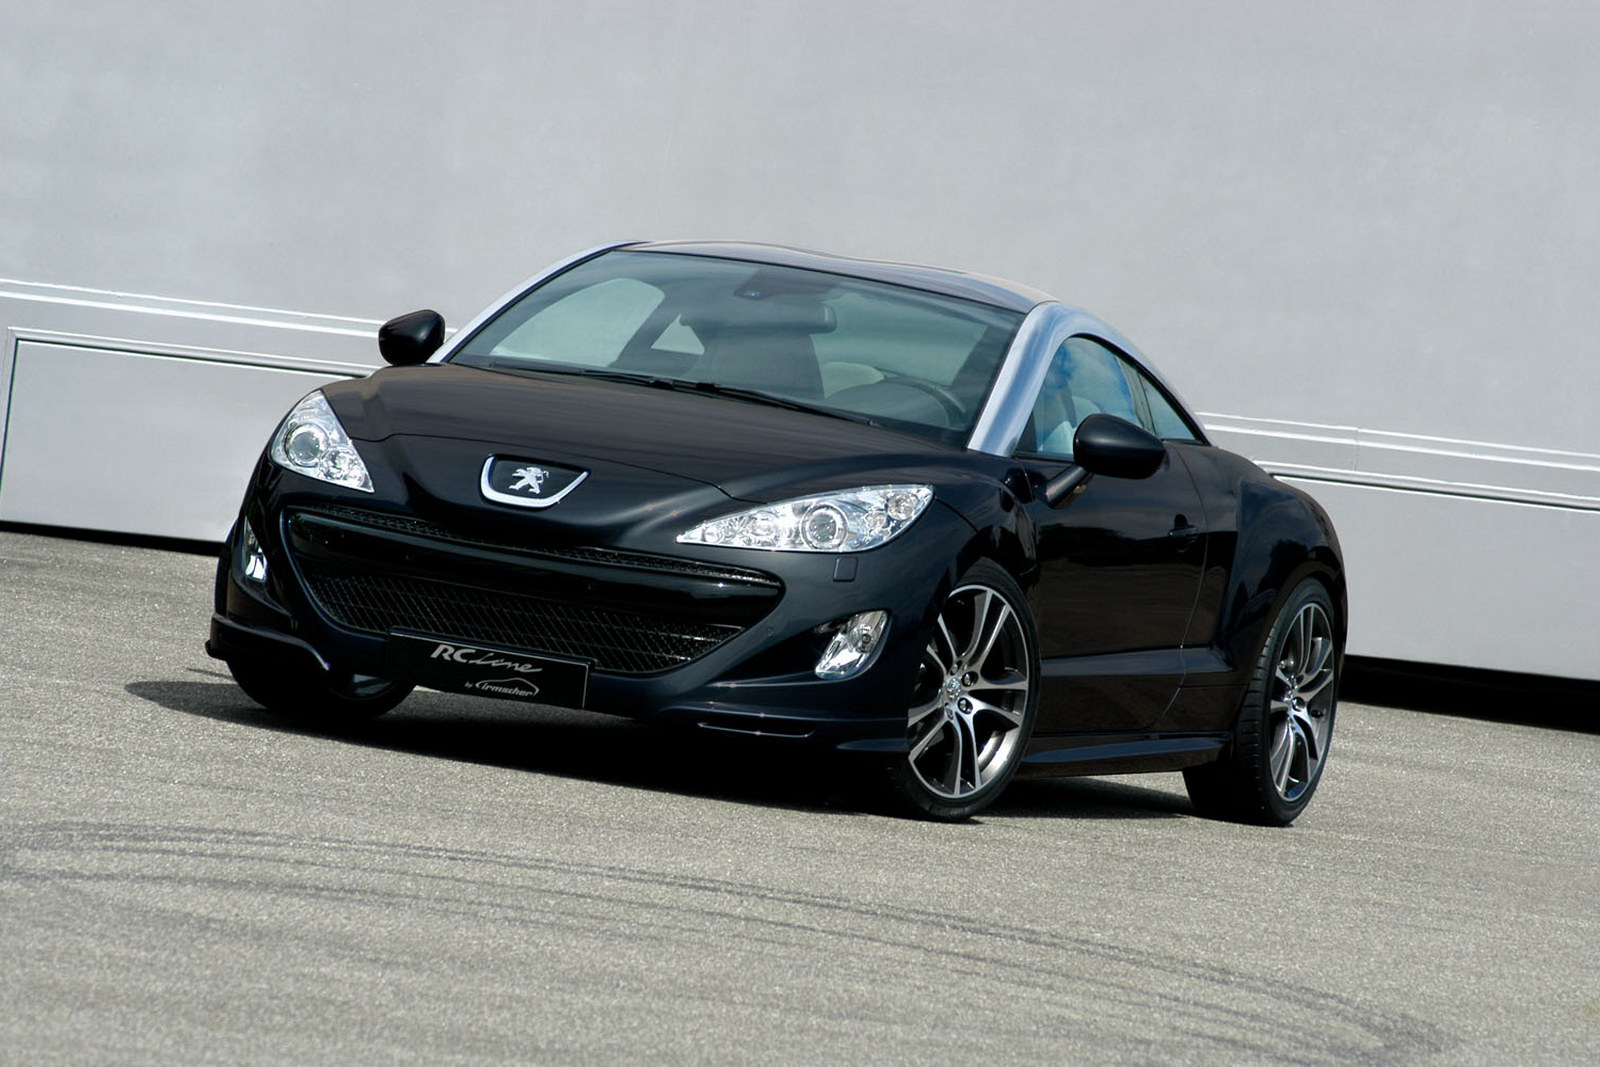 peugeot rcz enhanced with new exhausts and custom luggage autoevolution. Black Bedroom Furniture Sets. Home Design Ideas